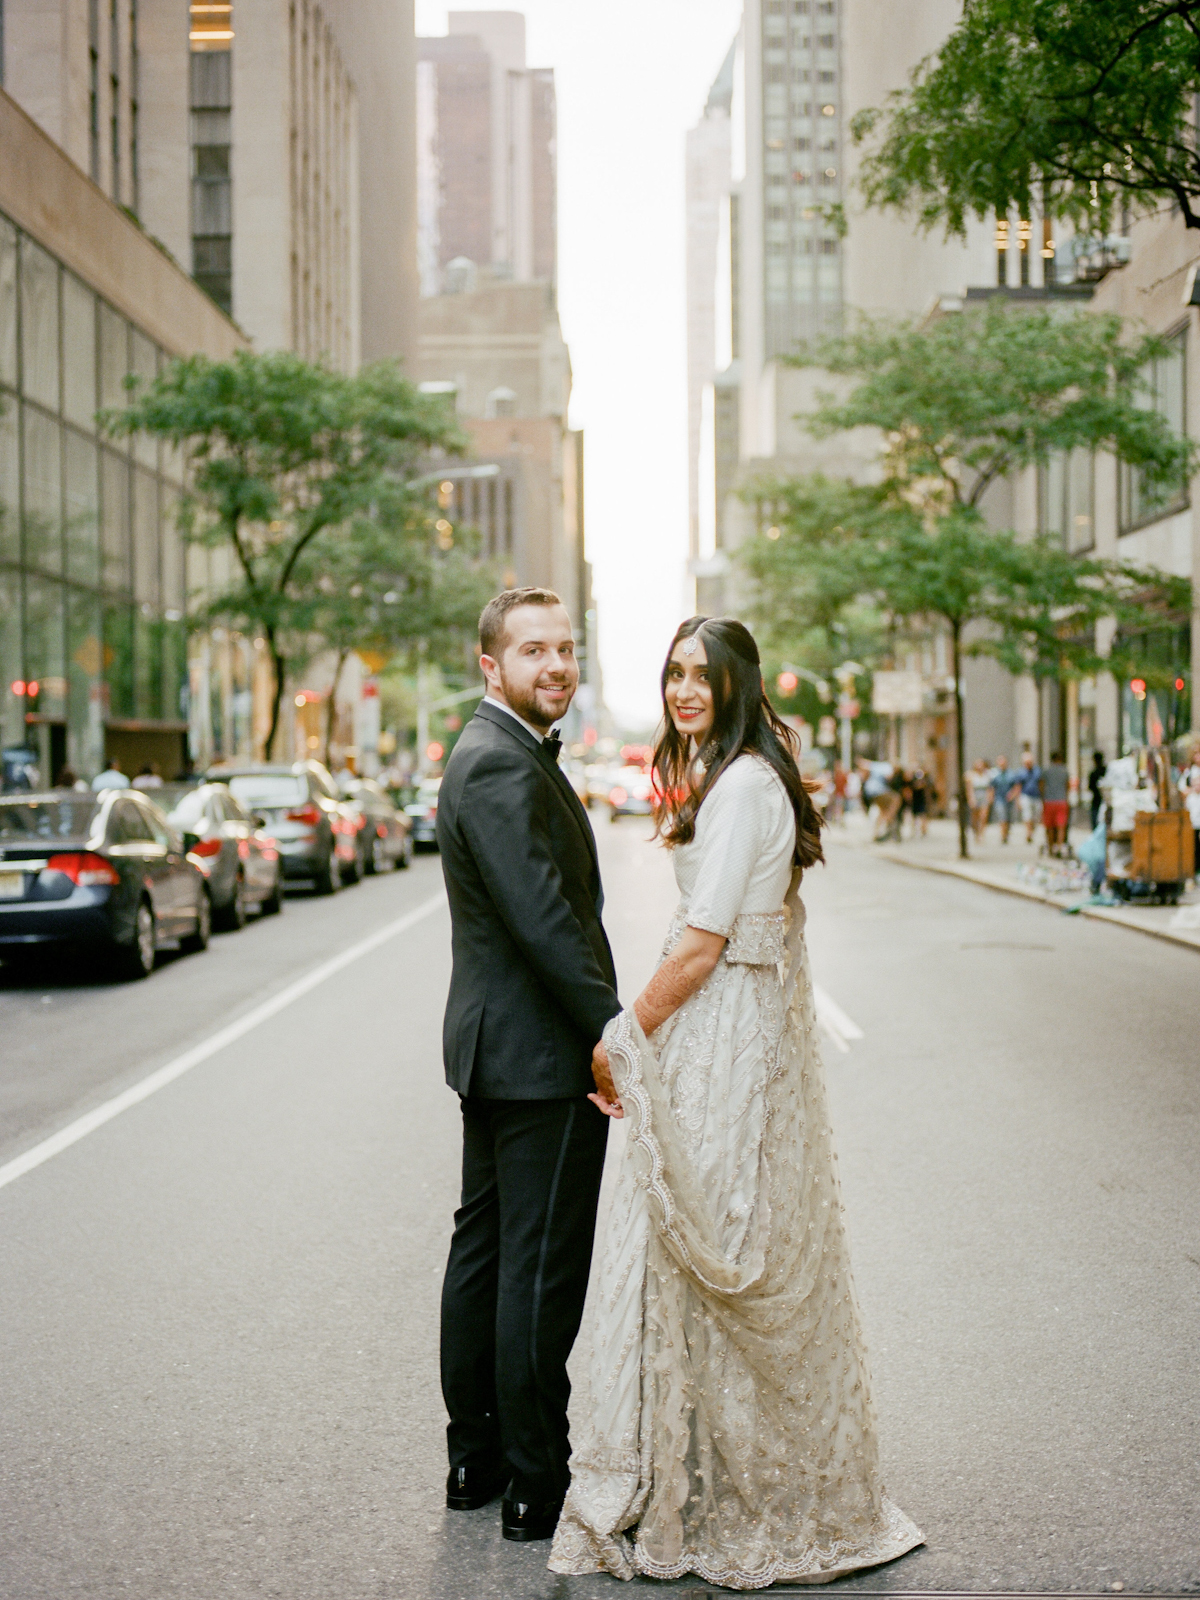 South asian bride and groom on New York City street